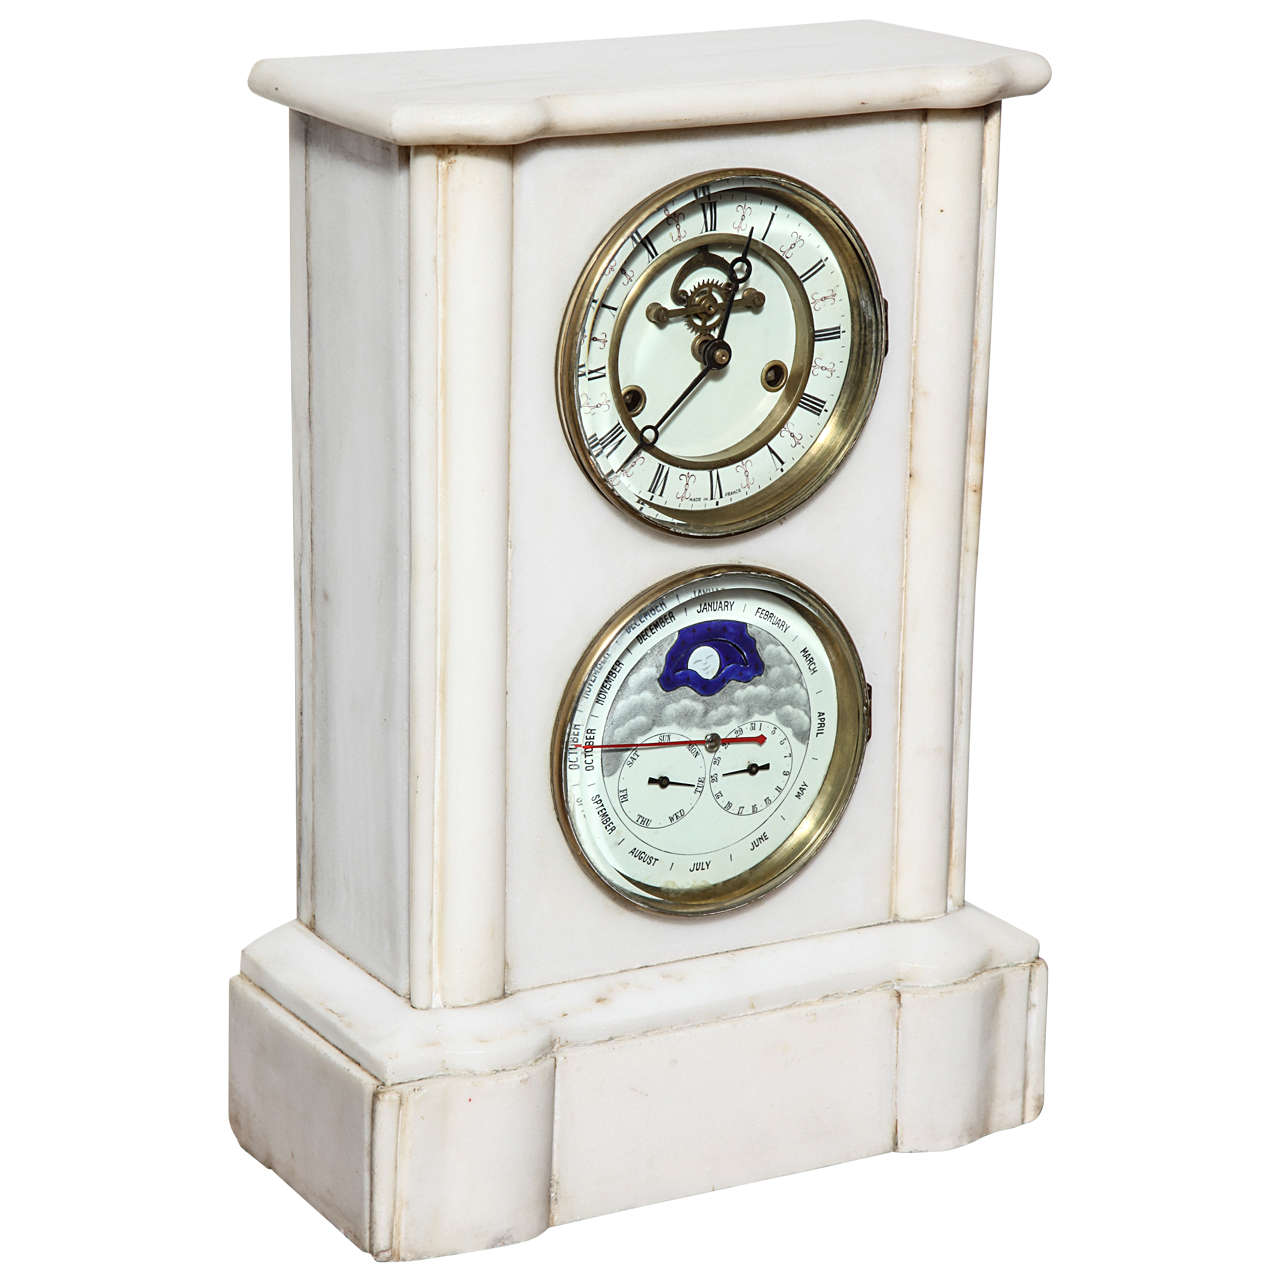 19th Century French Marble Calendar and Moon Phase Clock